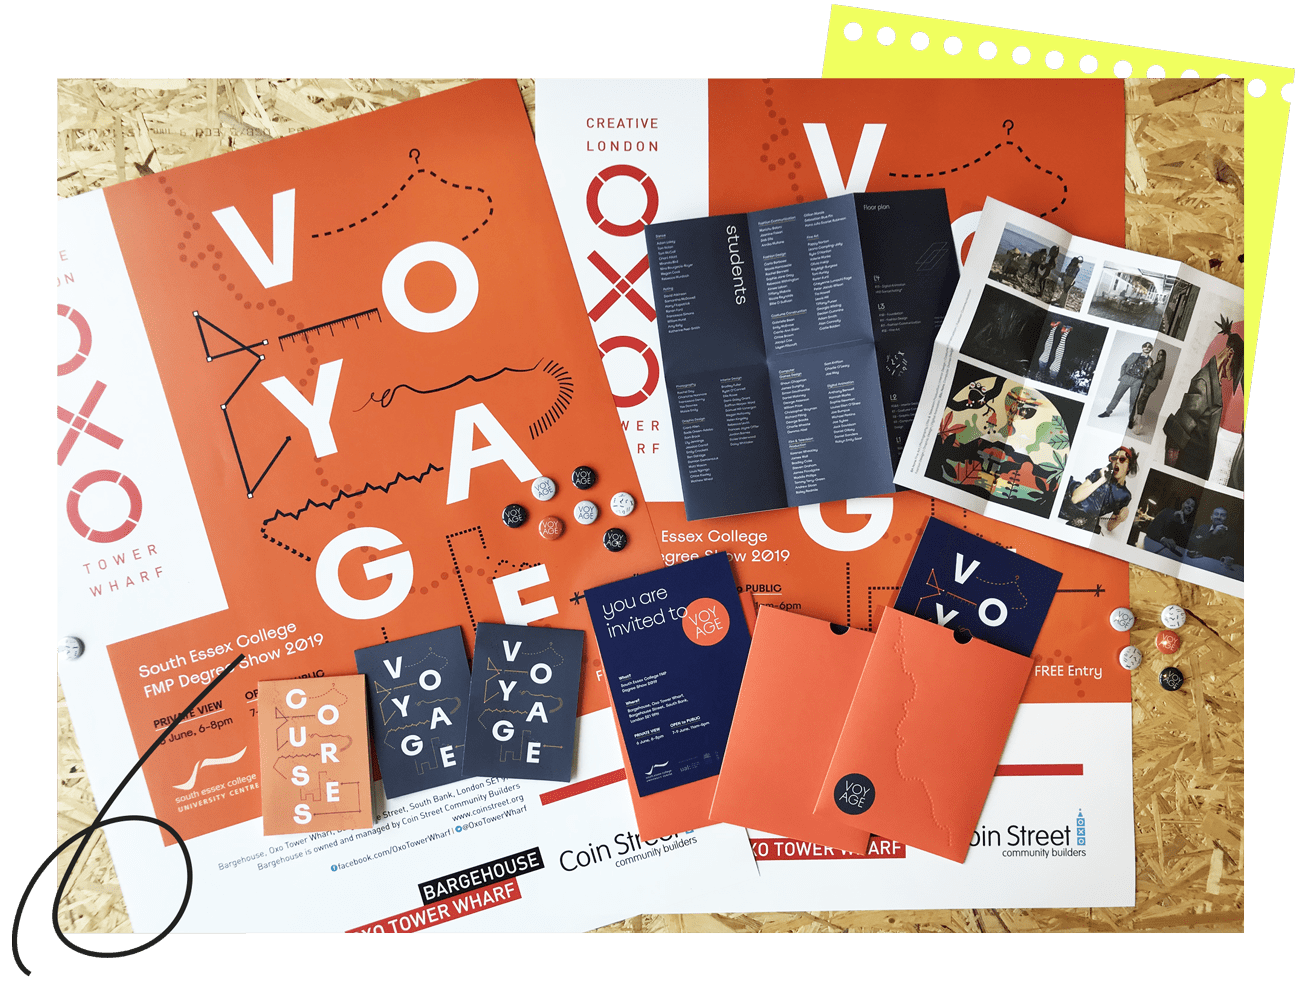 Voyage Exhibition printed materials laid out on a table - poster, leaflet, invite and custom badges